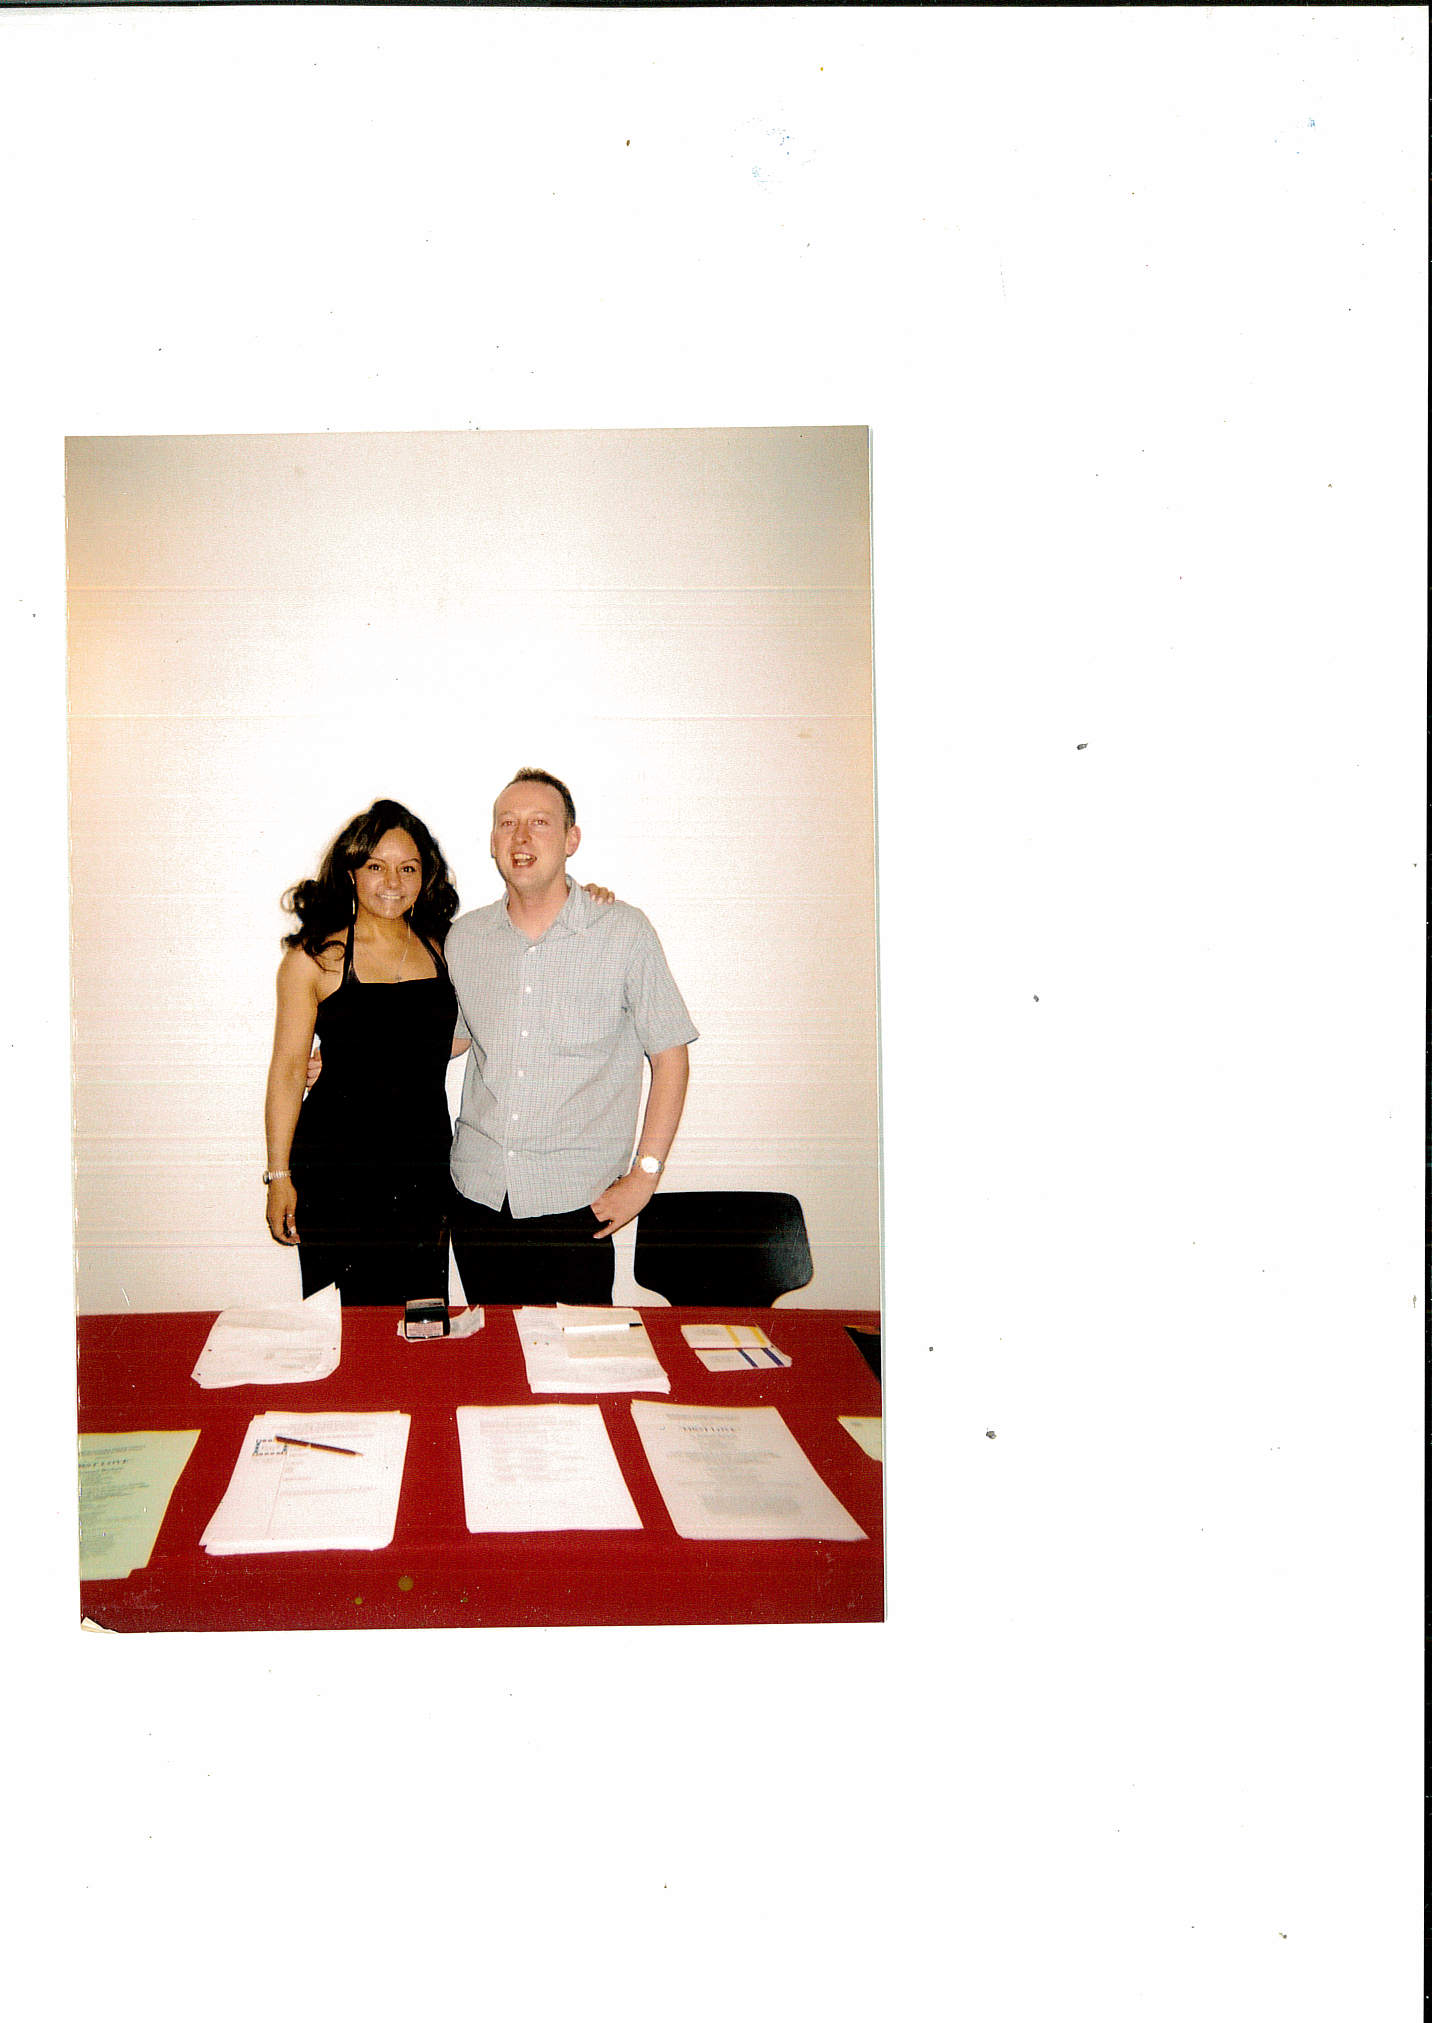 OWAP  FOYER ESPACE CARDIN  KIM WITH BEN WALMSLEY during our year long showcase stagings 1st year of 3 .jpg